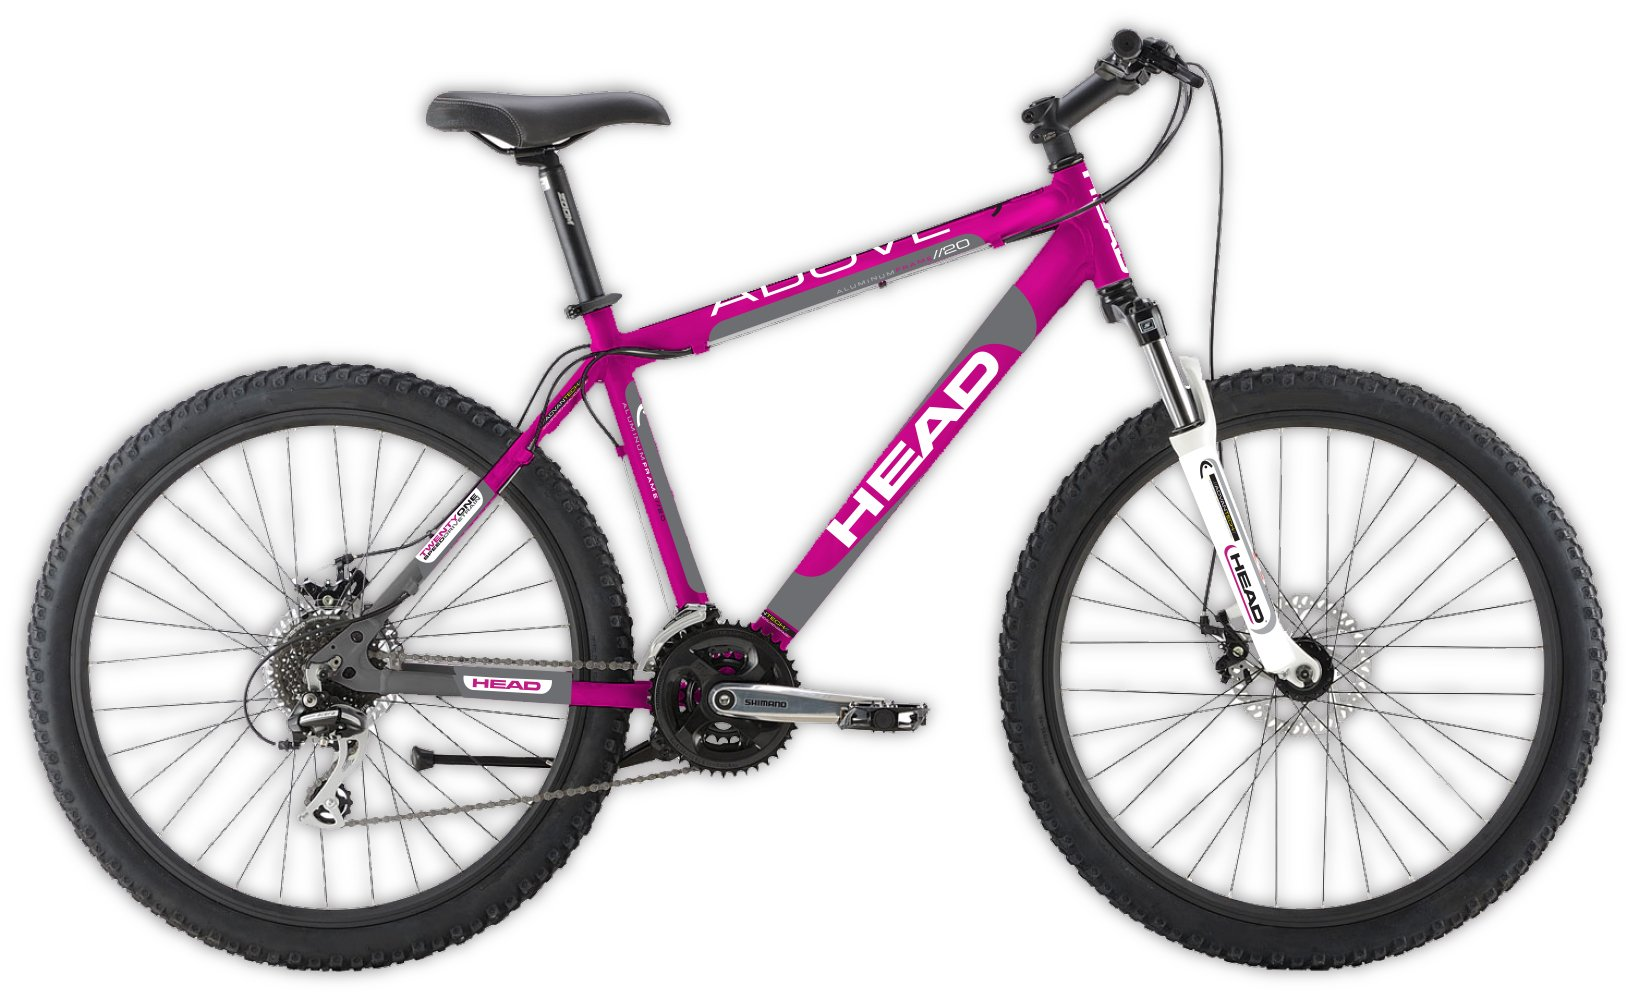 "HEAD Above G20 20"" Girls 21 Speed Mountain Bike Pink 10"" Frame"